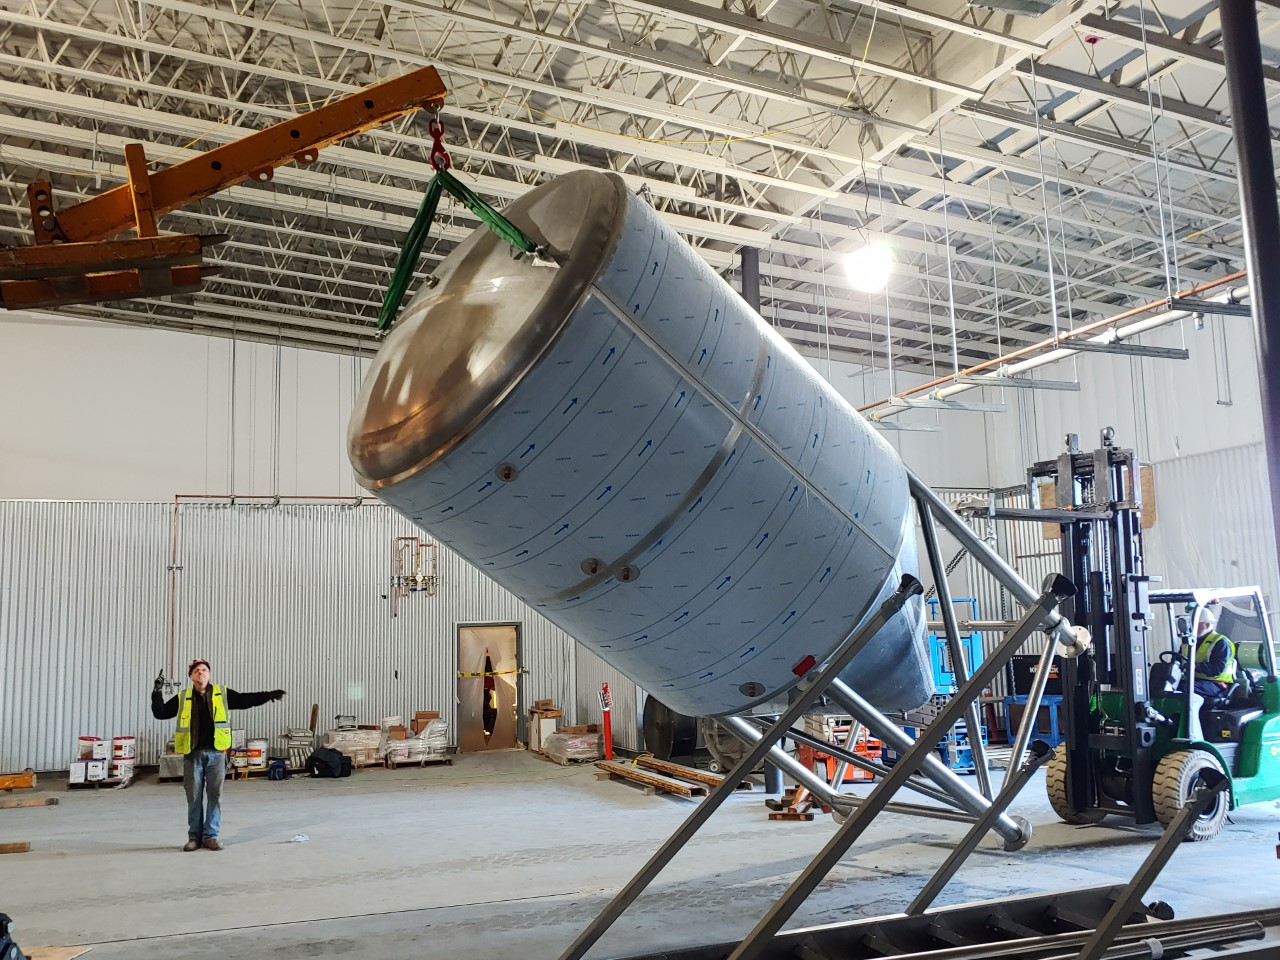 MARKS' crew raising a new brew tank in a brewery.